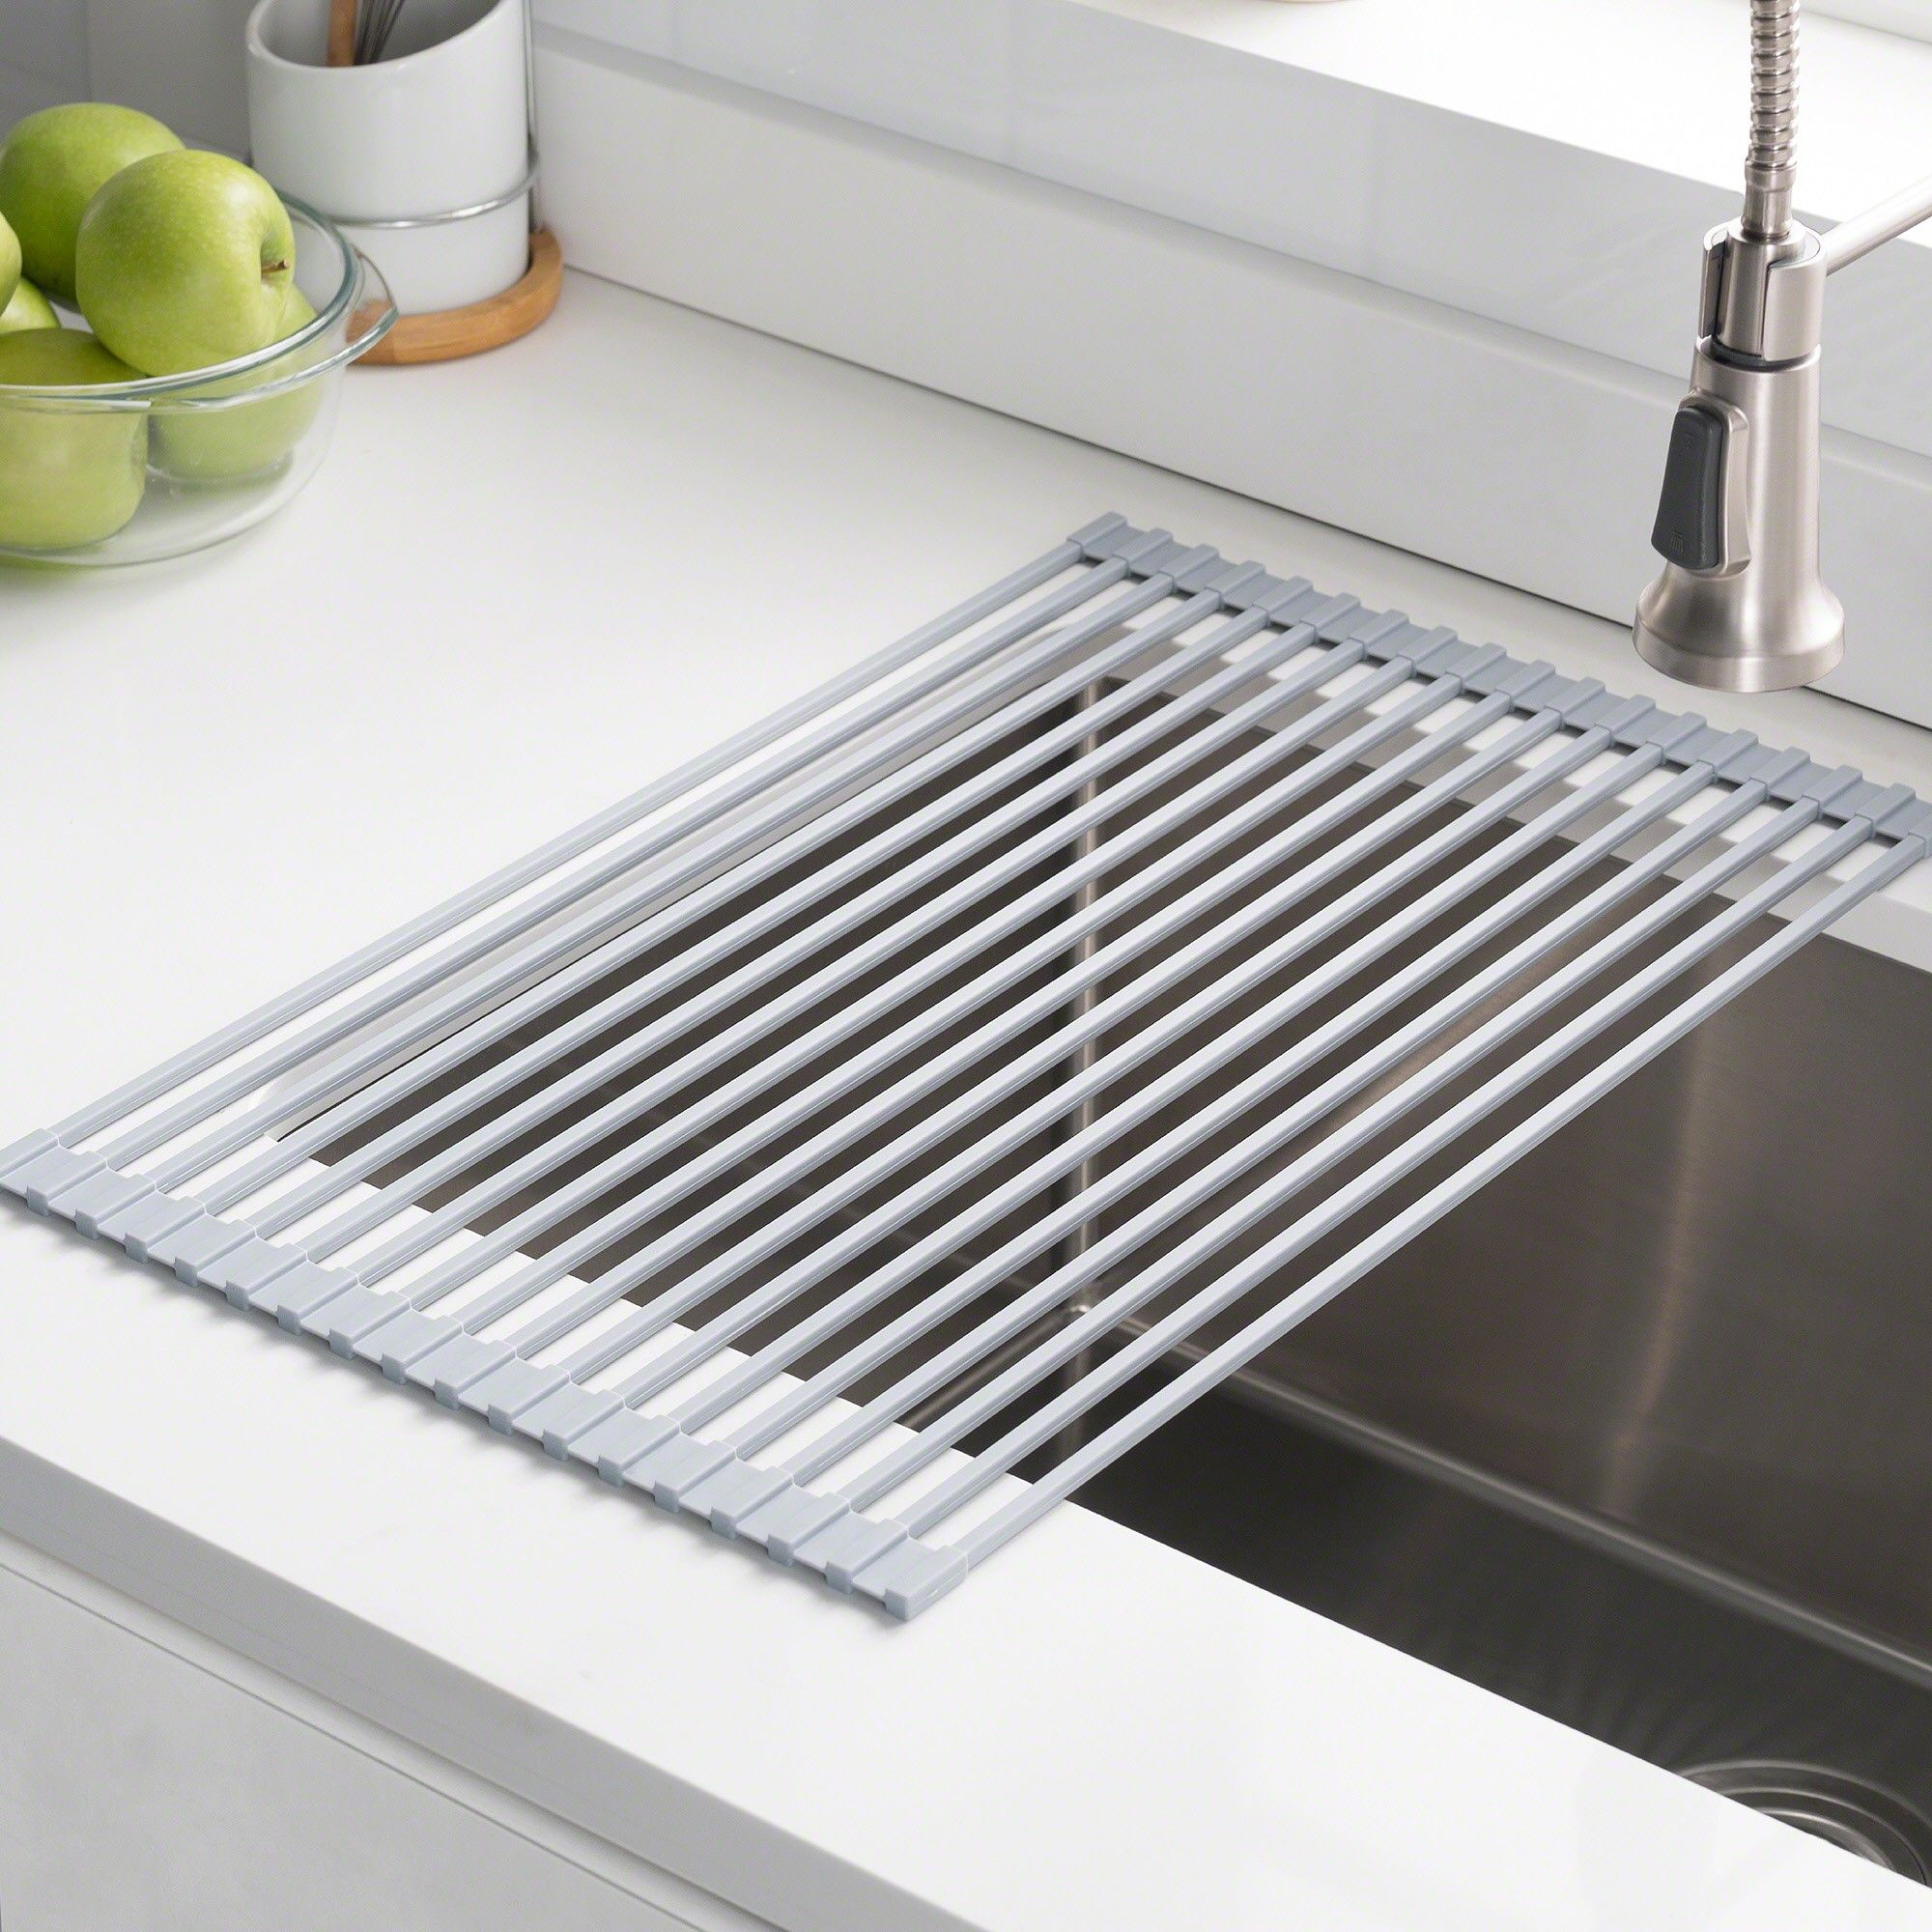 Stainless Steel Multipurpose Over Sink Roll Up Dish Drying Rack In